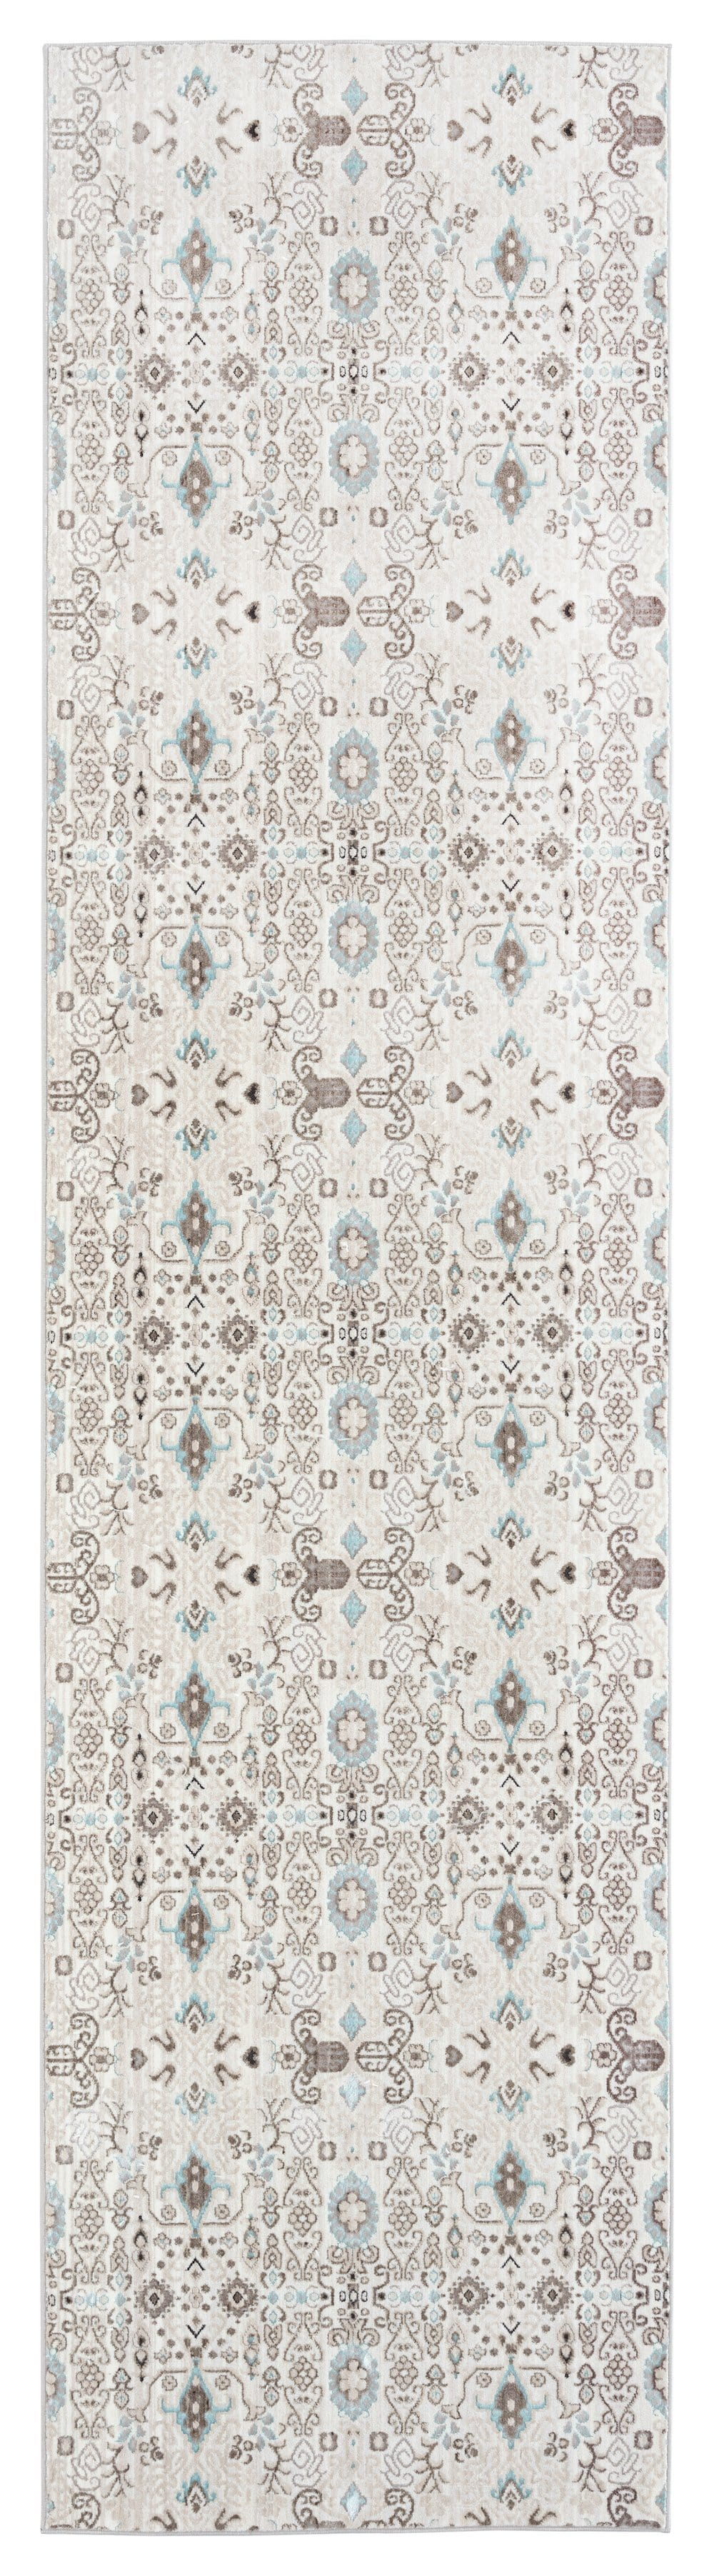 Evie Cream Grey and Blue Traditional Floral Runner Rug